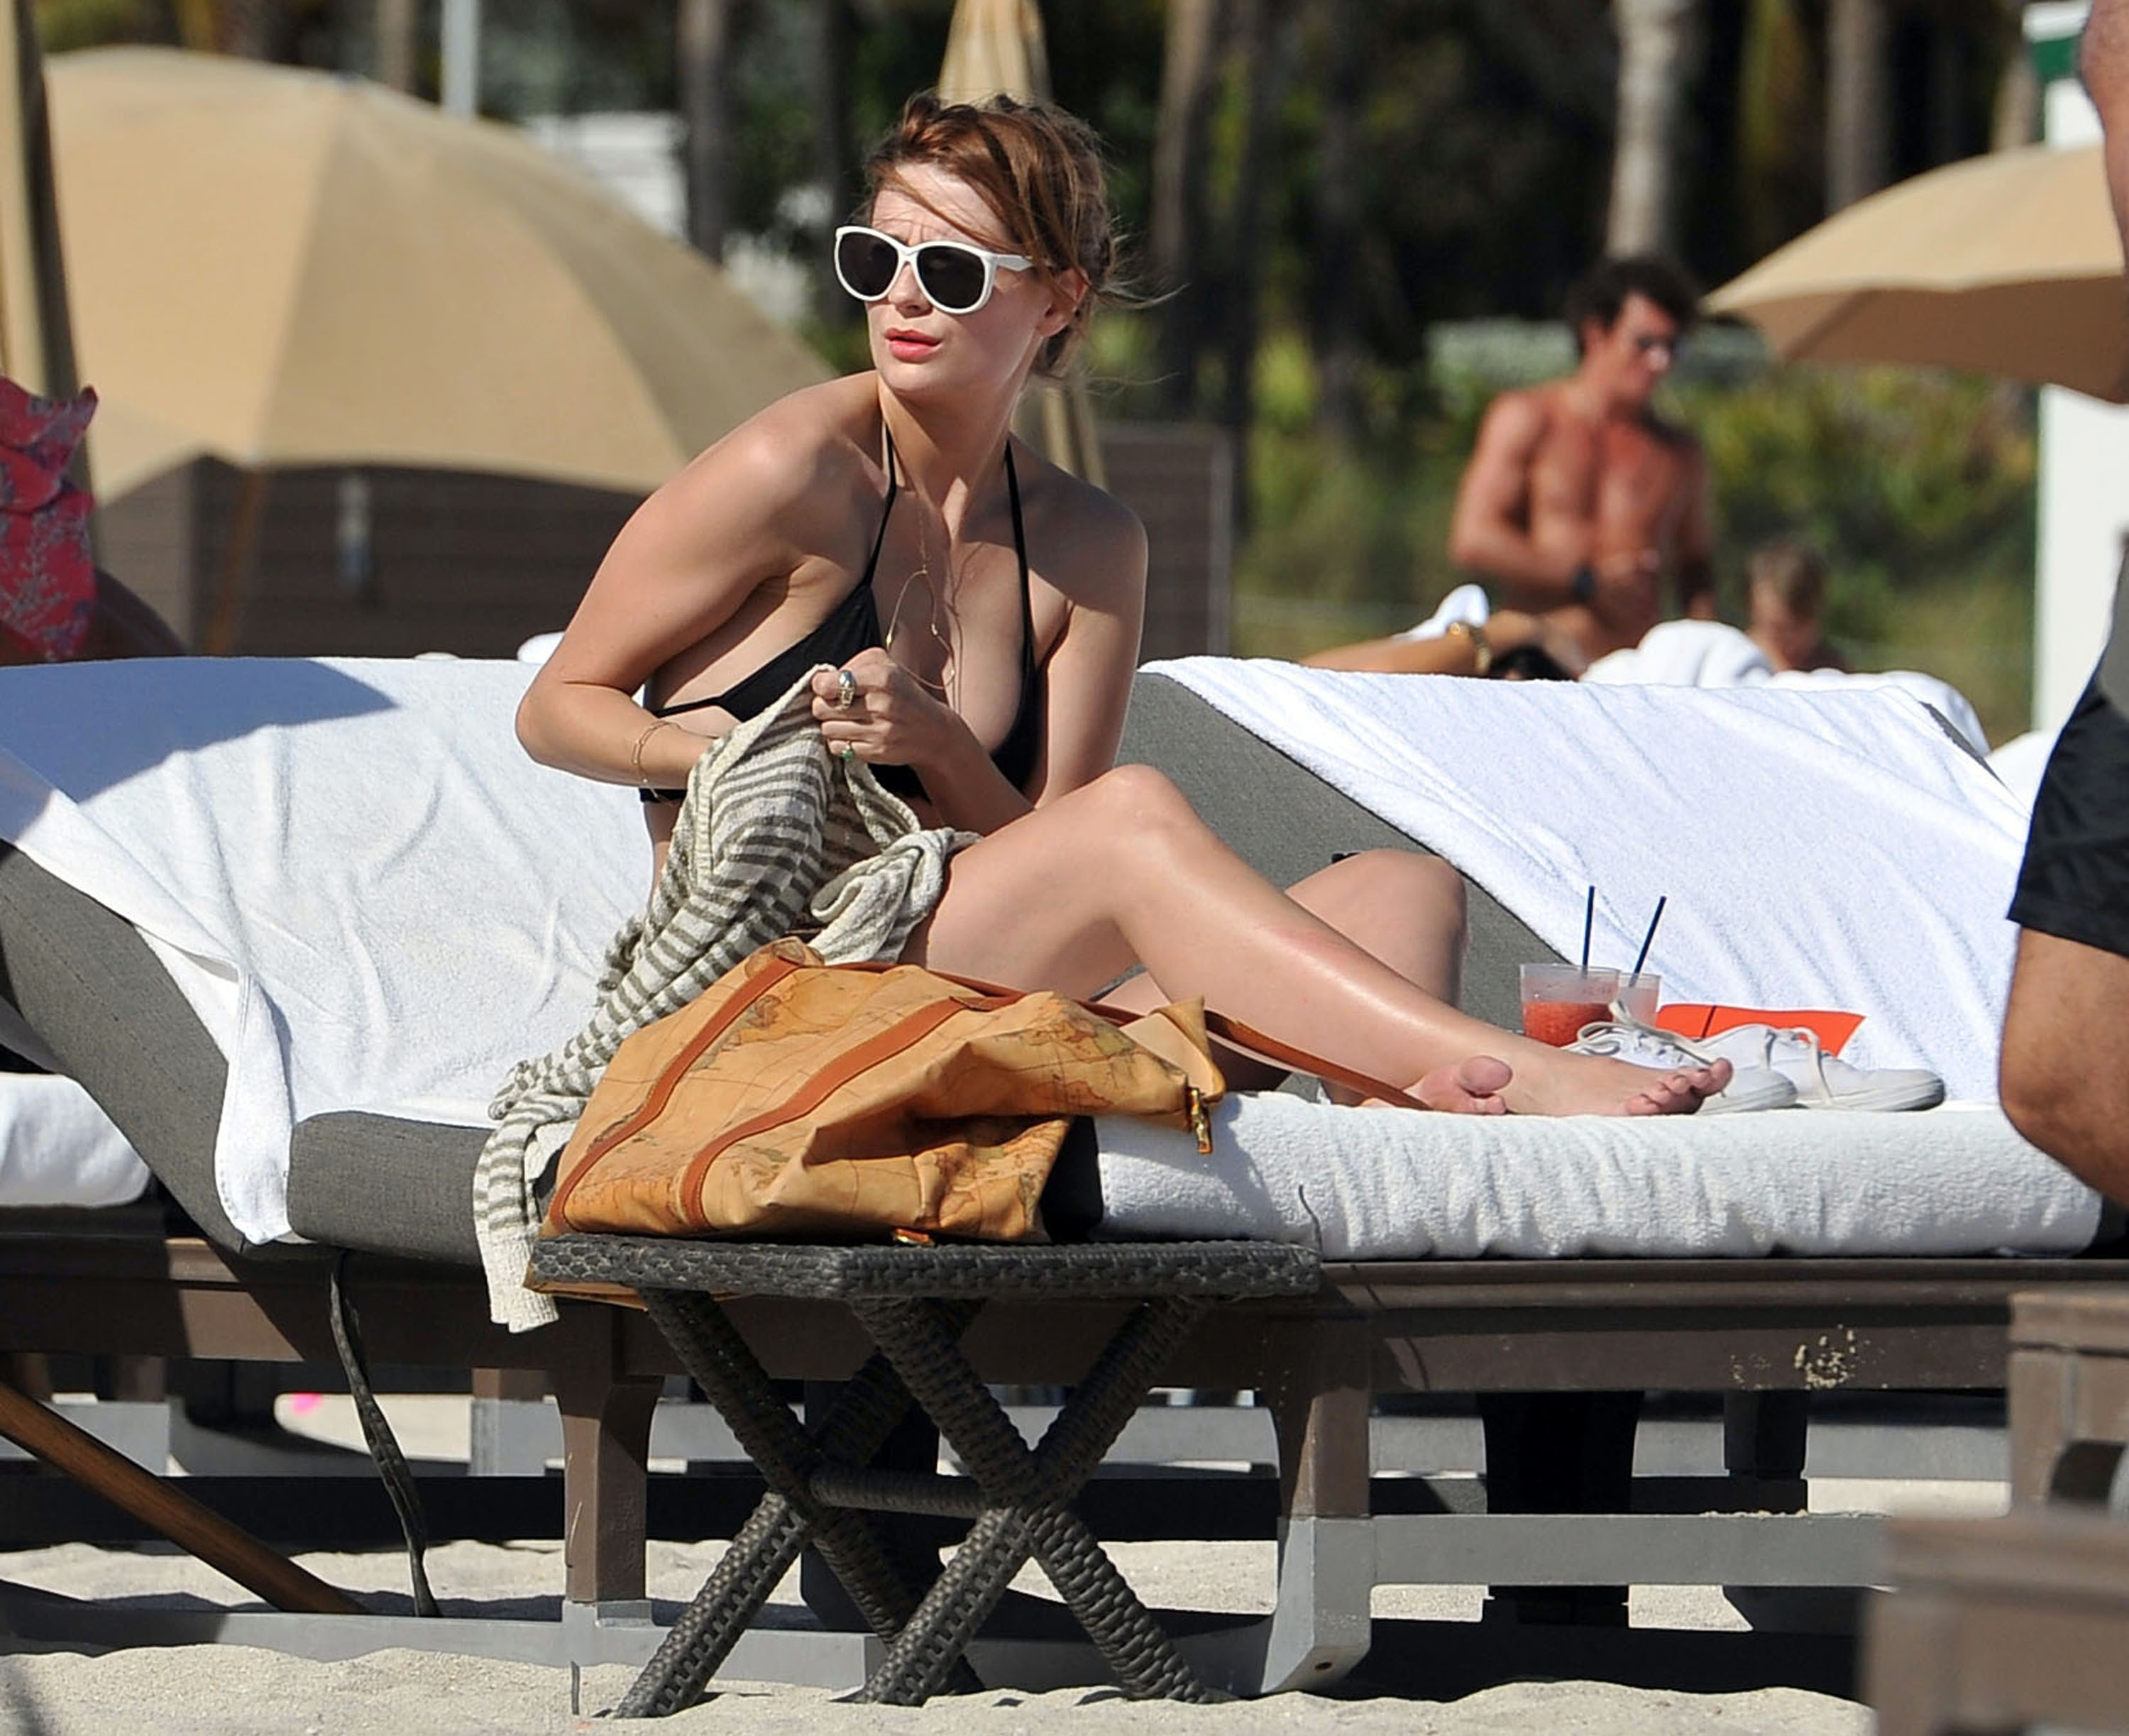 311817777_Mischa_Barton_Bikini_Candids_on_the_Beach_in_Miami_December_27_2011_107_122_188lo.jpg